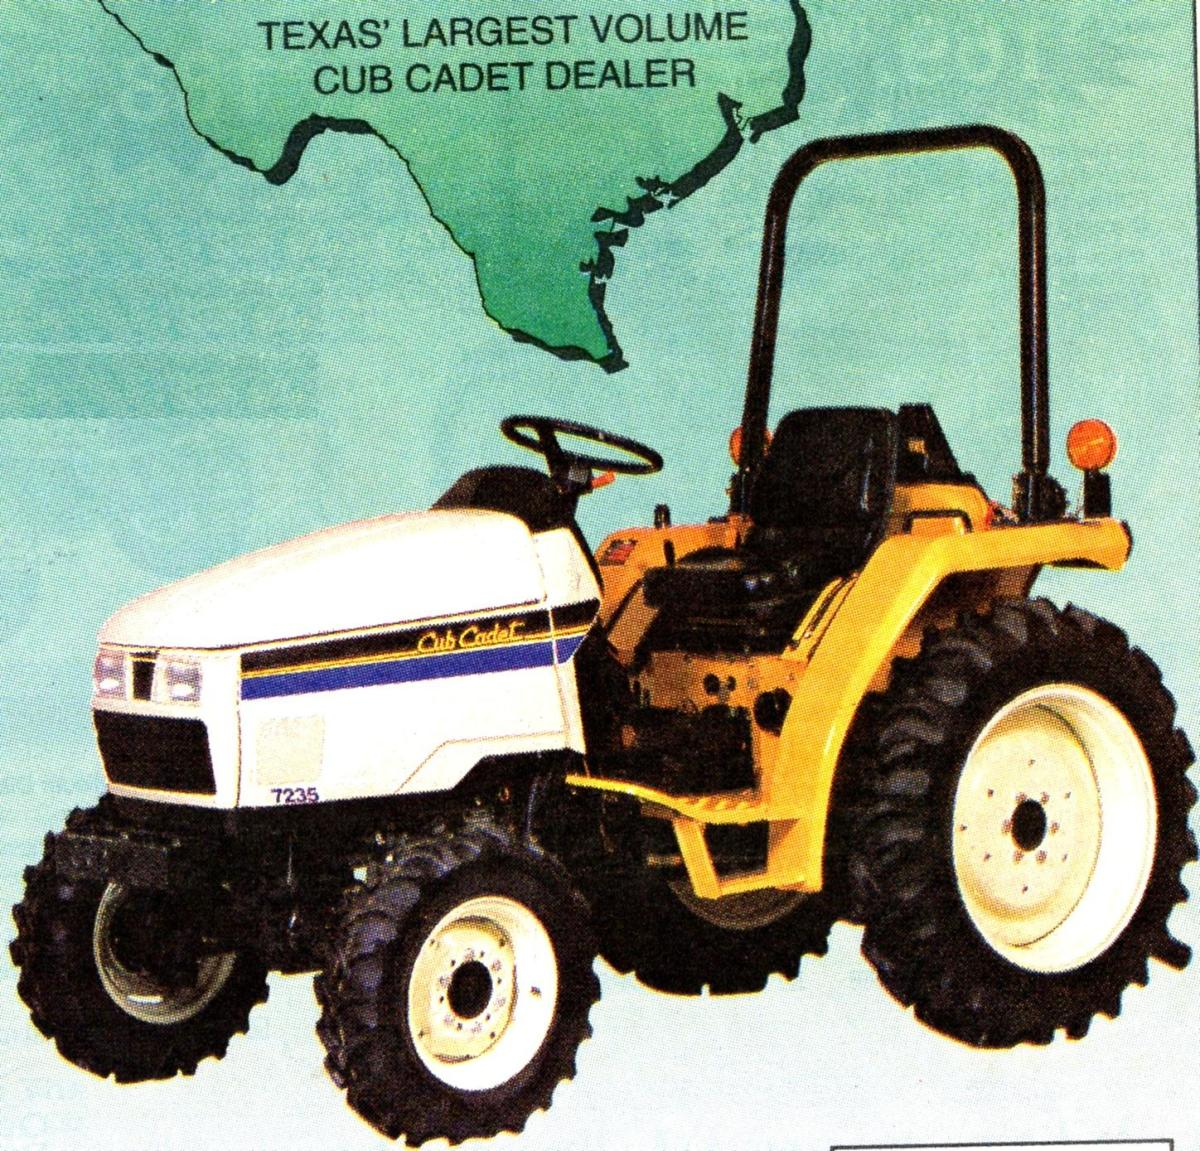 The original advertisement from the purchase of our tractor.